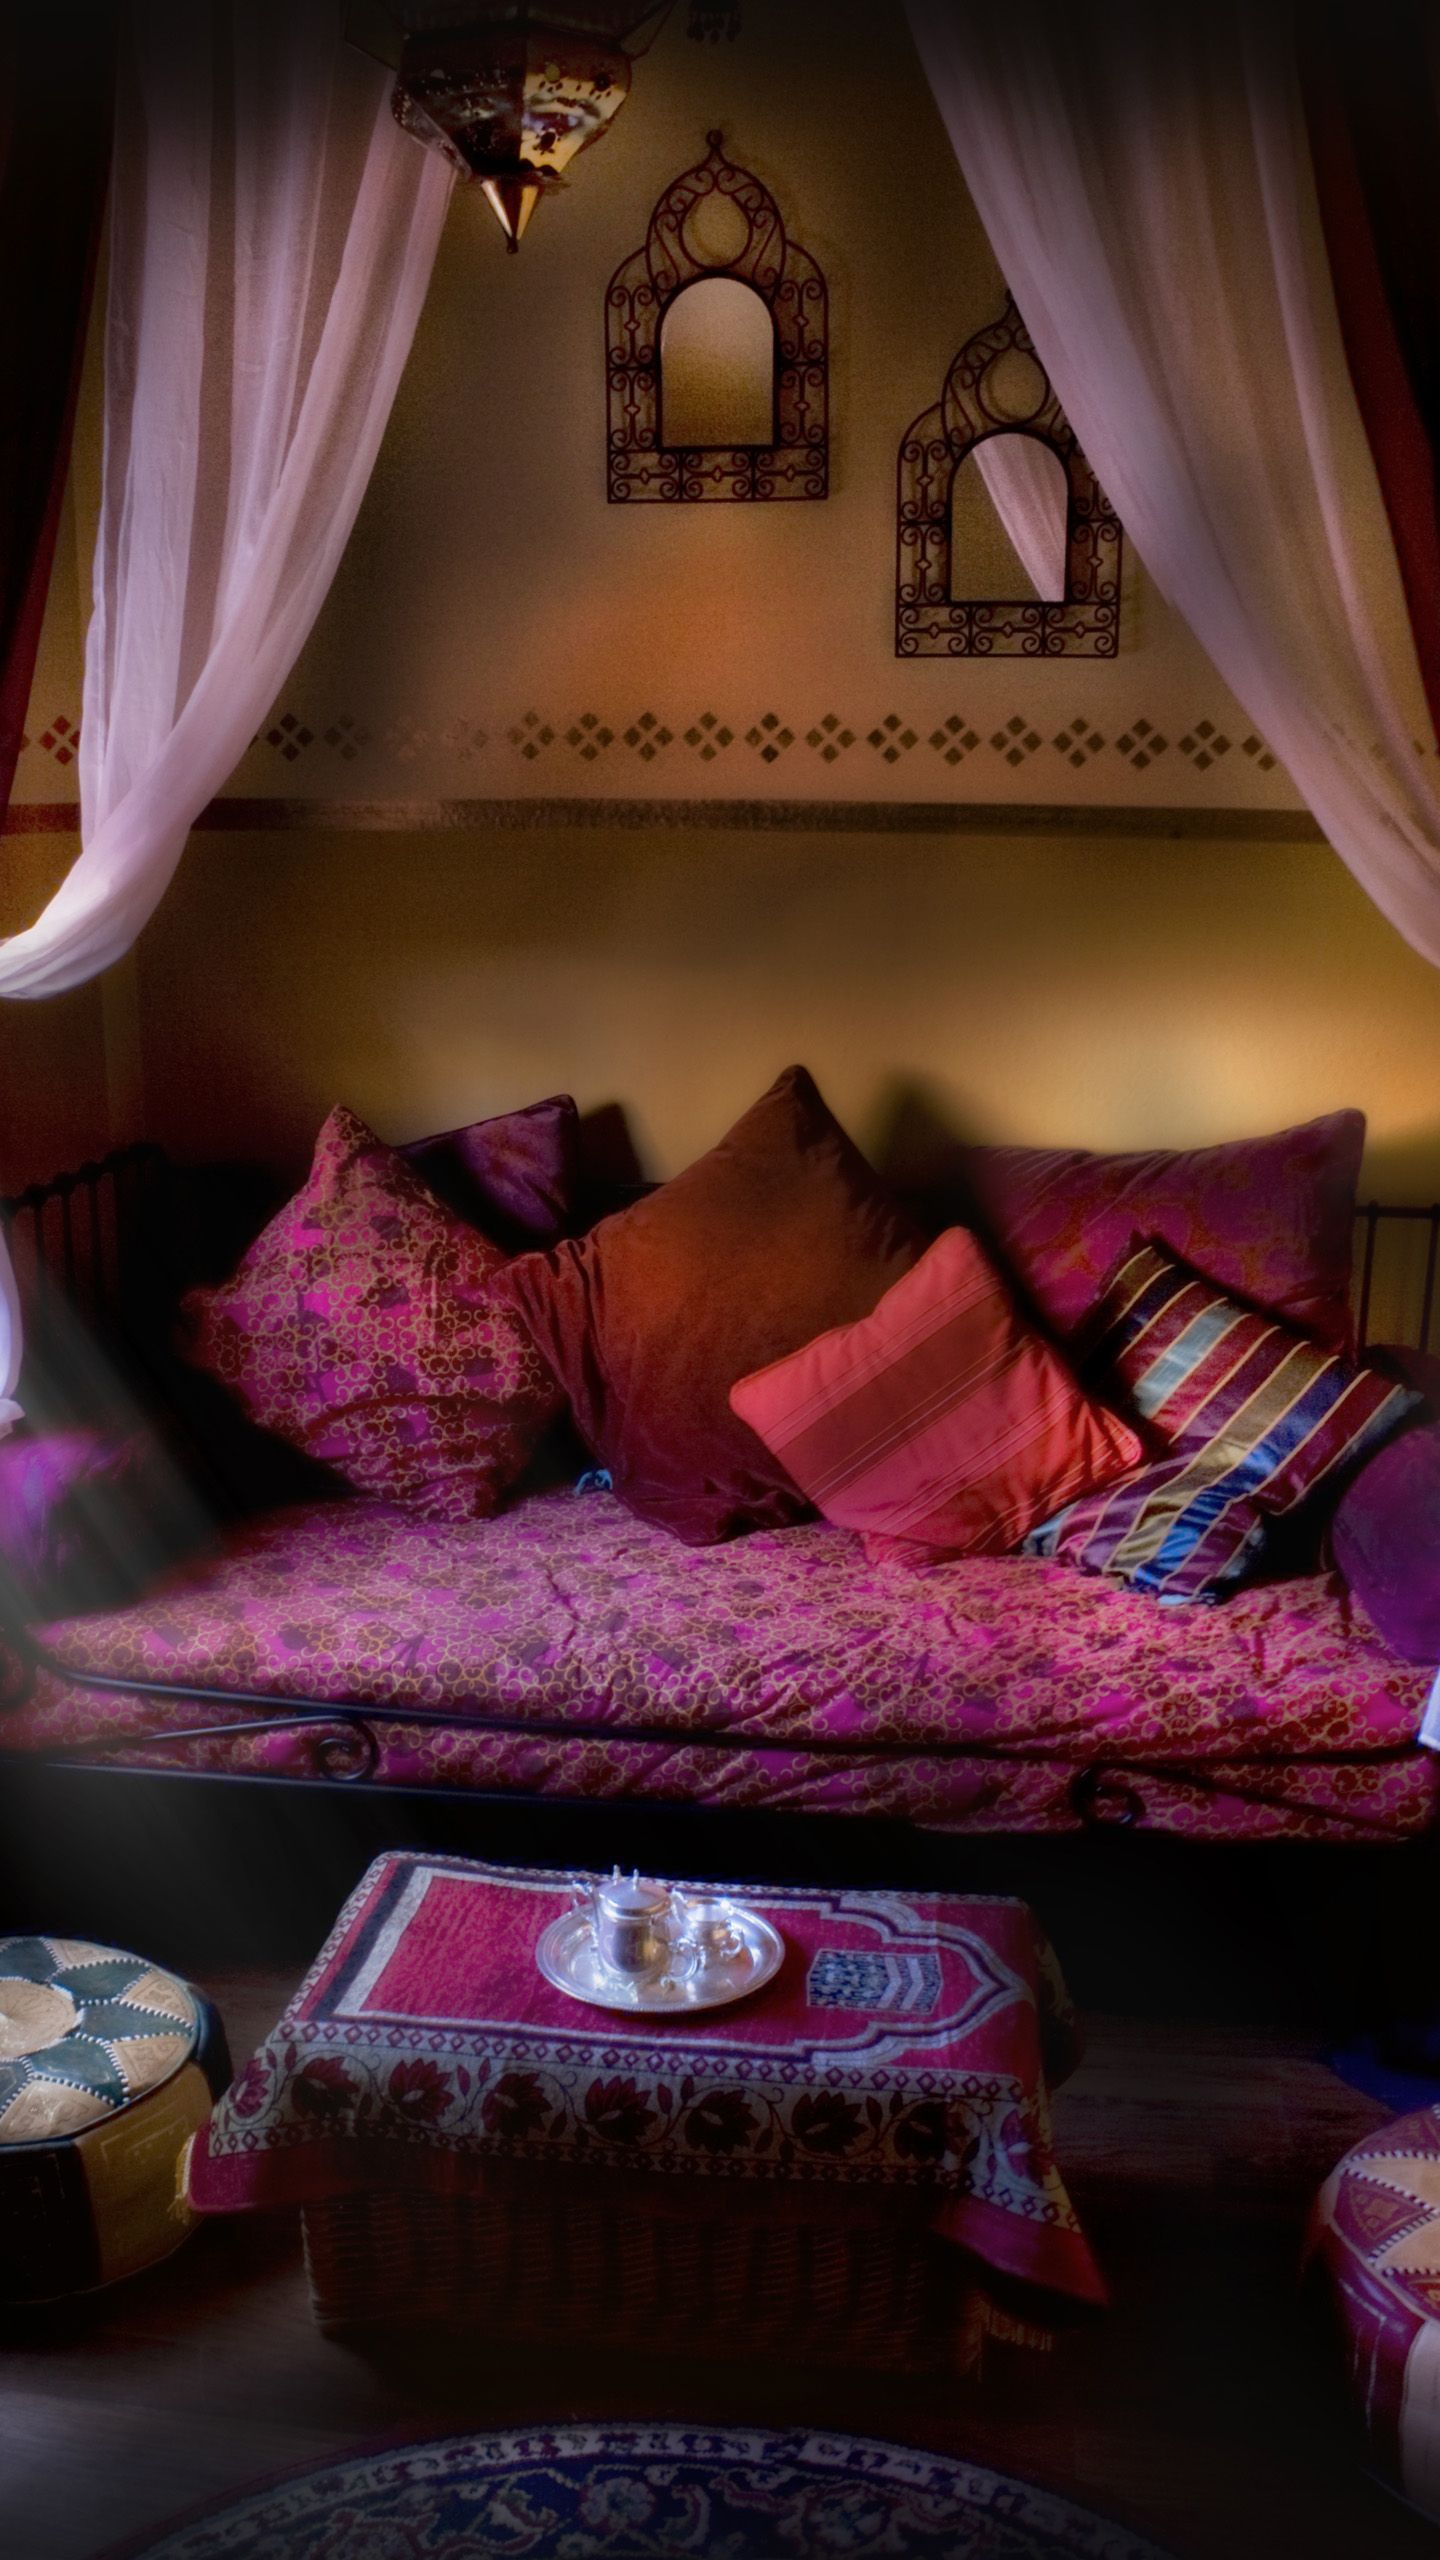 Exotic moroccan bedroom decorating light and deep purple colors - Boho Decor Bliss Bright Gypsy Color Hippie Bohemian Mixed Pattern Home Decorating Ideas Purple Mix